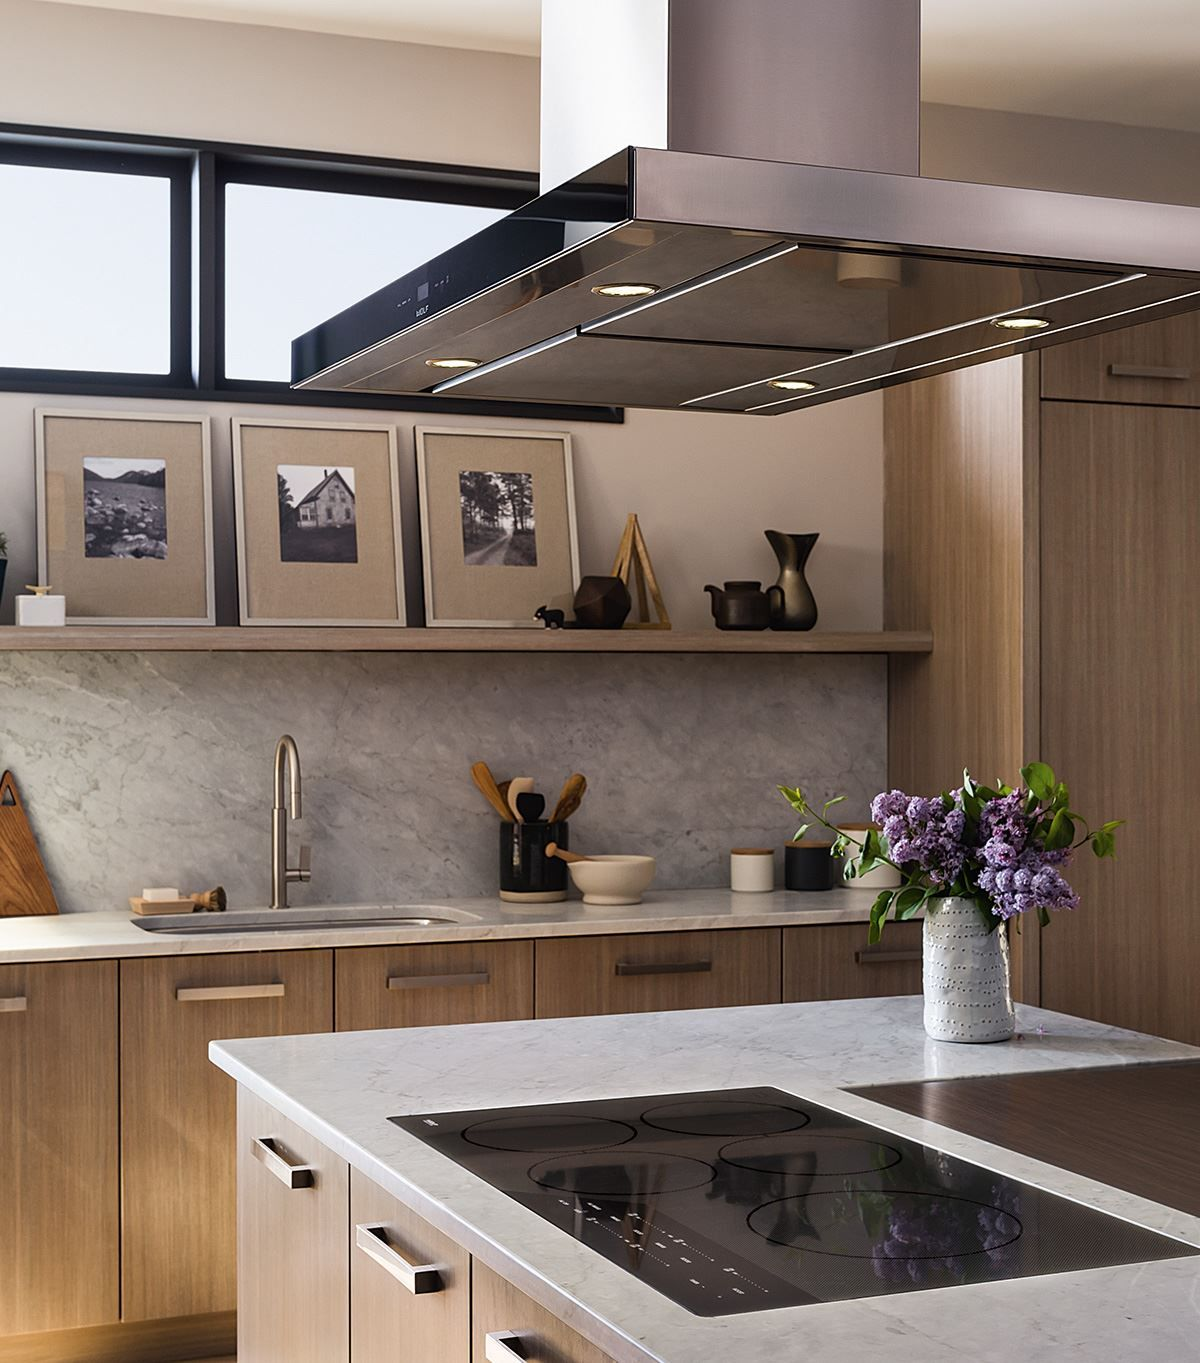 A Wolf Stove Hood Can Compliment Any Kitchen Design Luxury Kitchen Ventilation Options Include Wall Hoods Chimney Hoods Island Hoods Do Kitchen Hood Design Kitchen Ventilation Kitchen Island With Cooktop